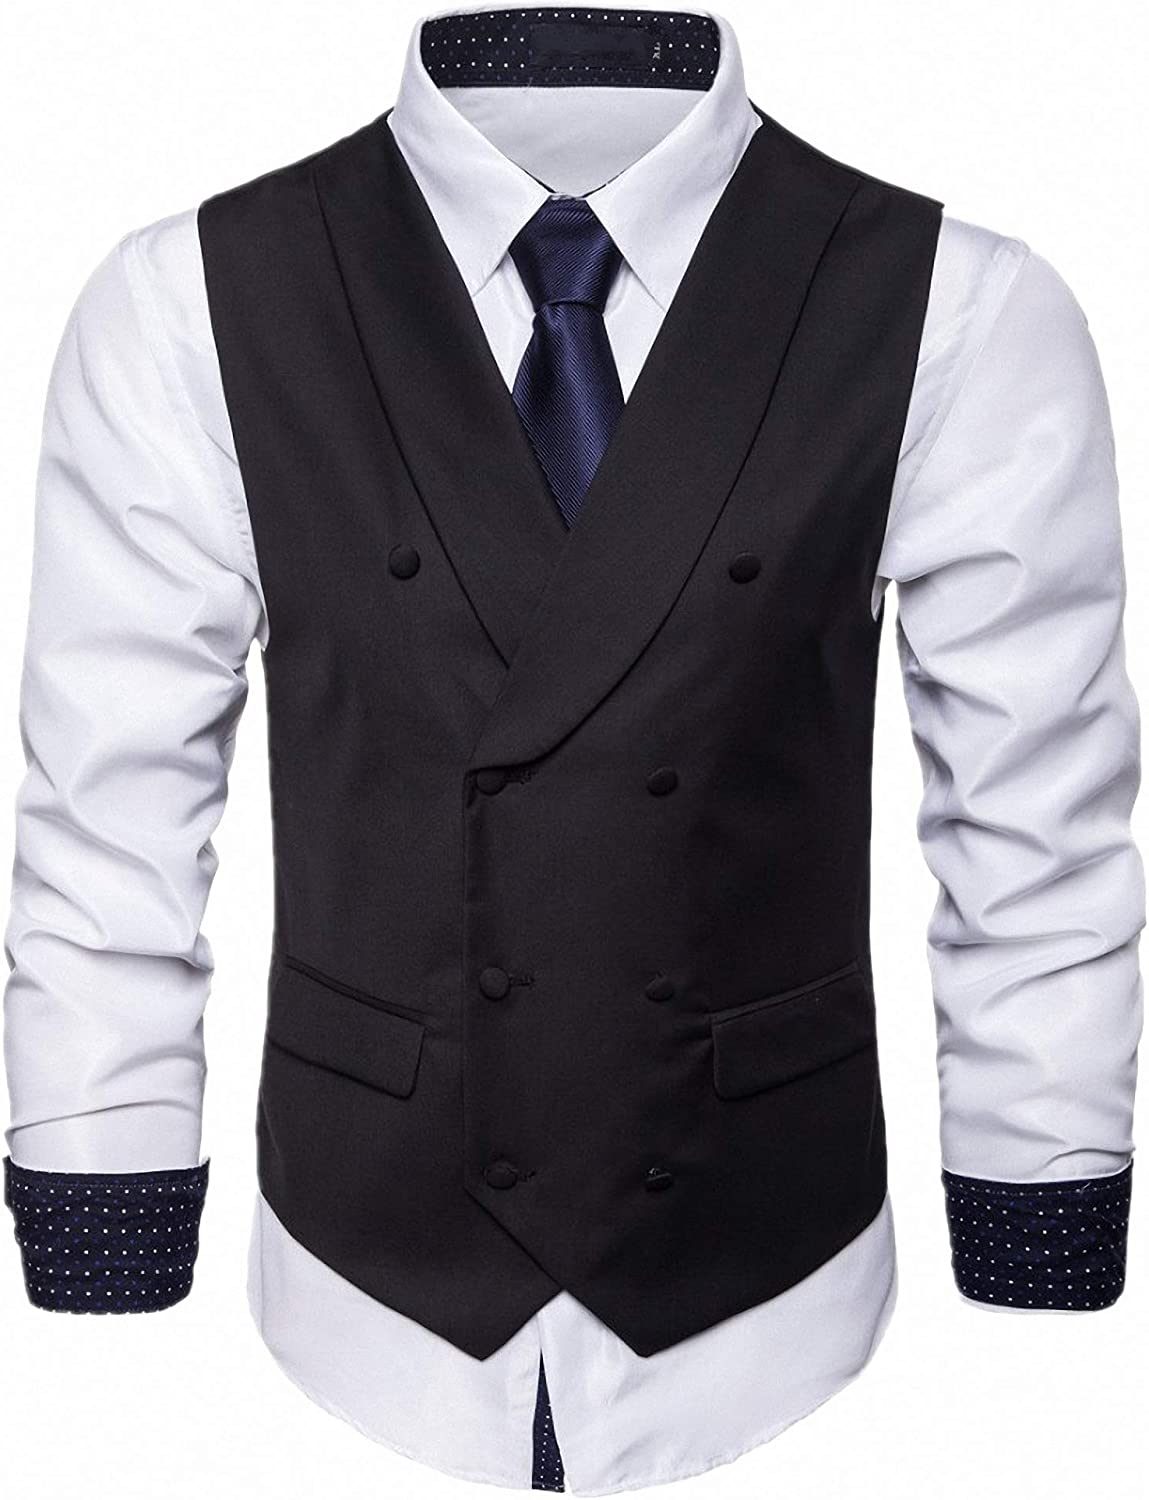 Anshirlisa Business Man Formal Double Breasted Vest Wedding Tuxedo Suits Waistcoat Slim Fit Outfit for Party